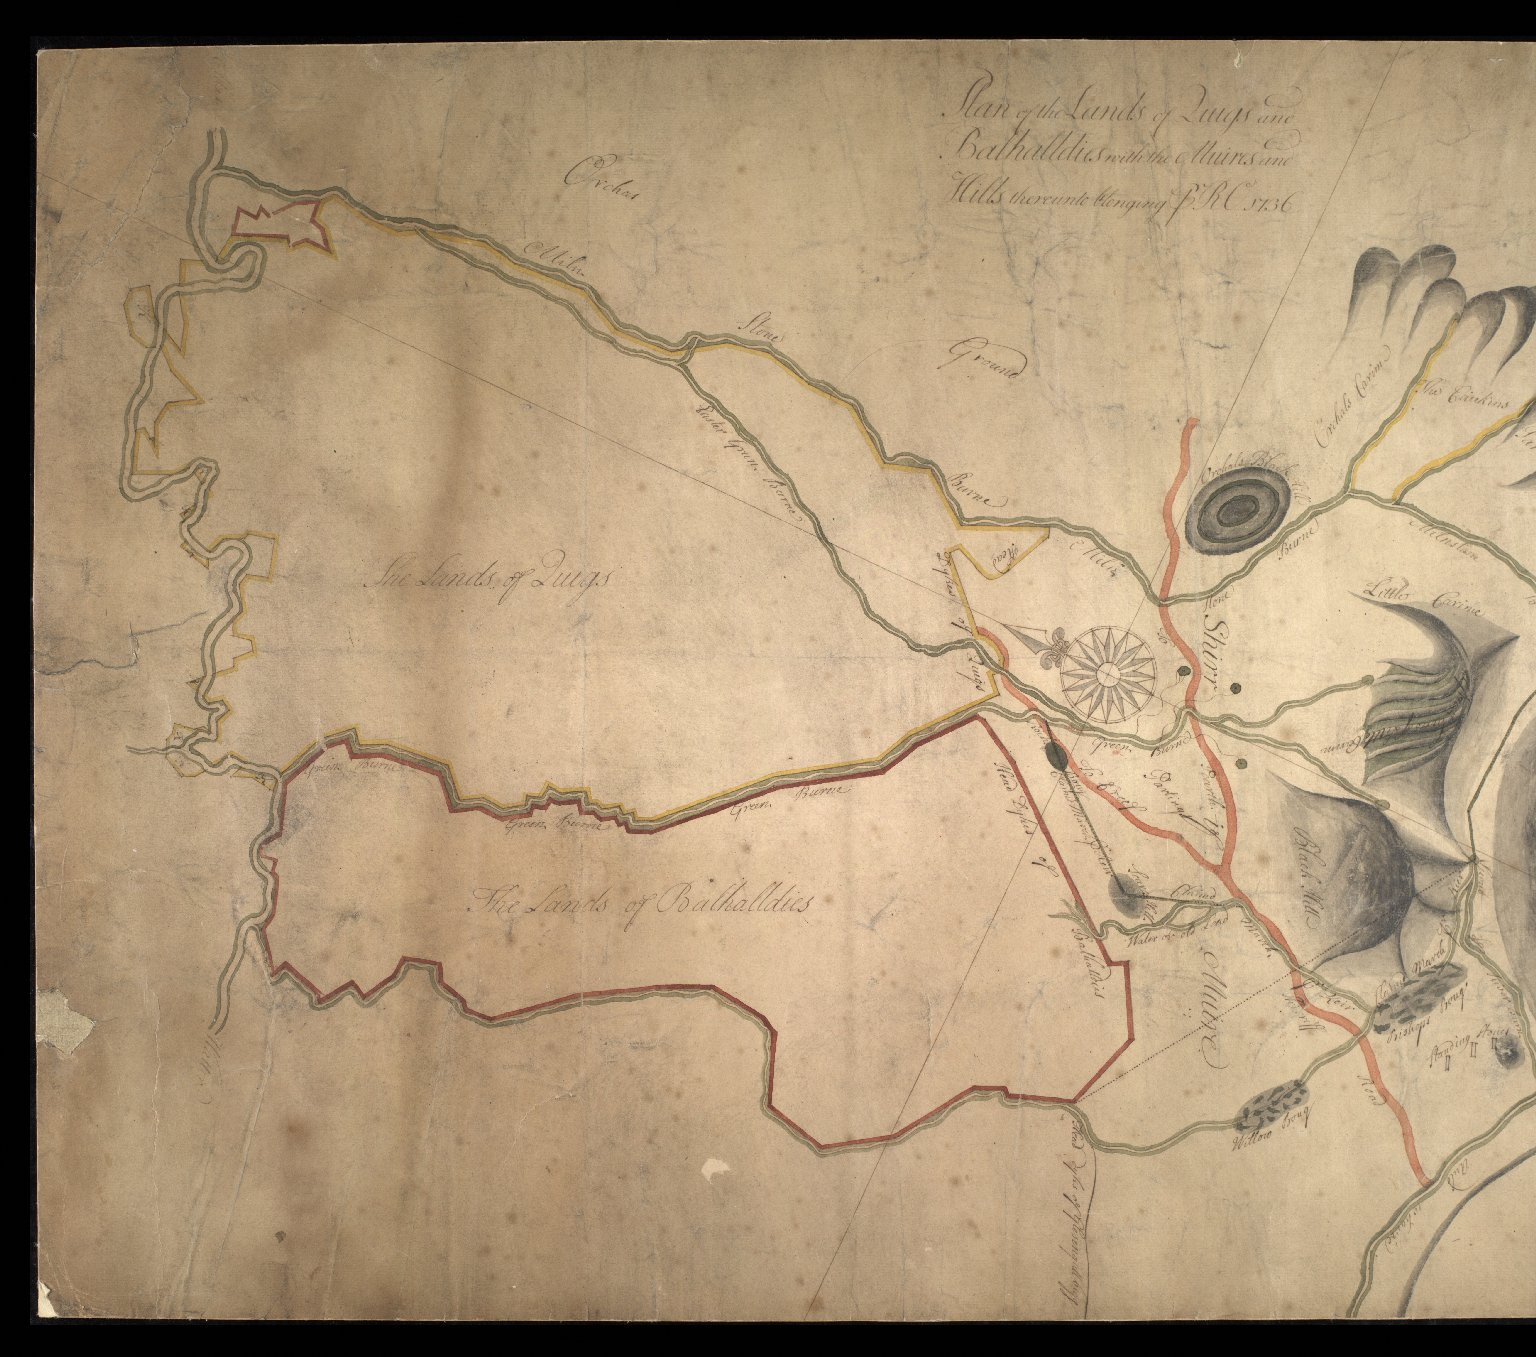 Plan of the Lands of Quigs [i.e. Quoigs] and Balhalldies [i.e. Balhaldie] with ye Muirs and Hills thereunto belonging to RO, 1736. [1 of 2]